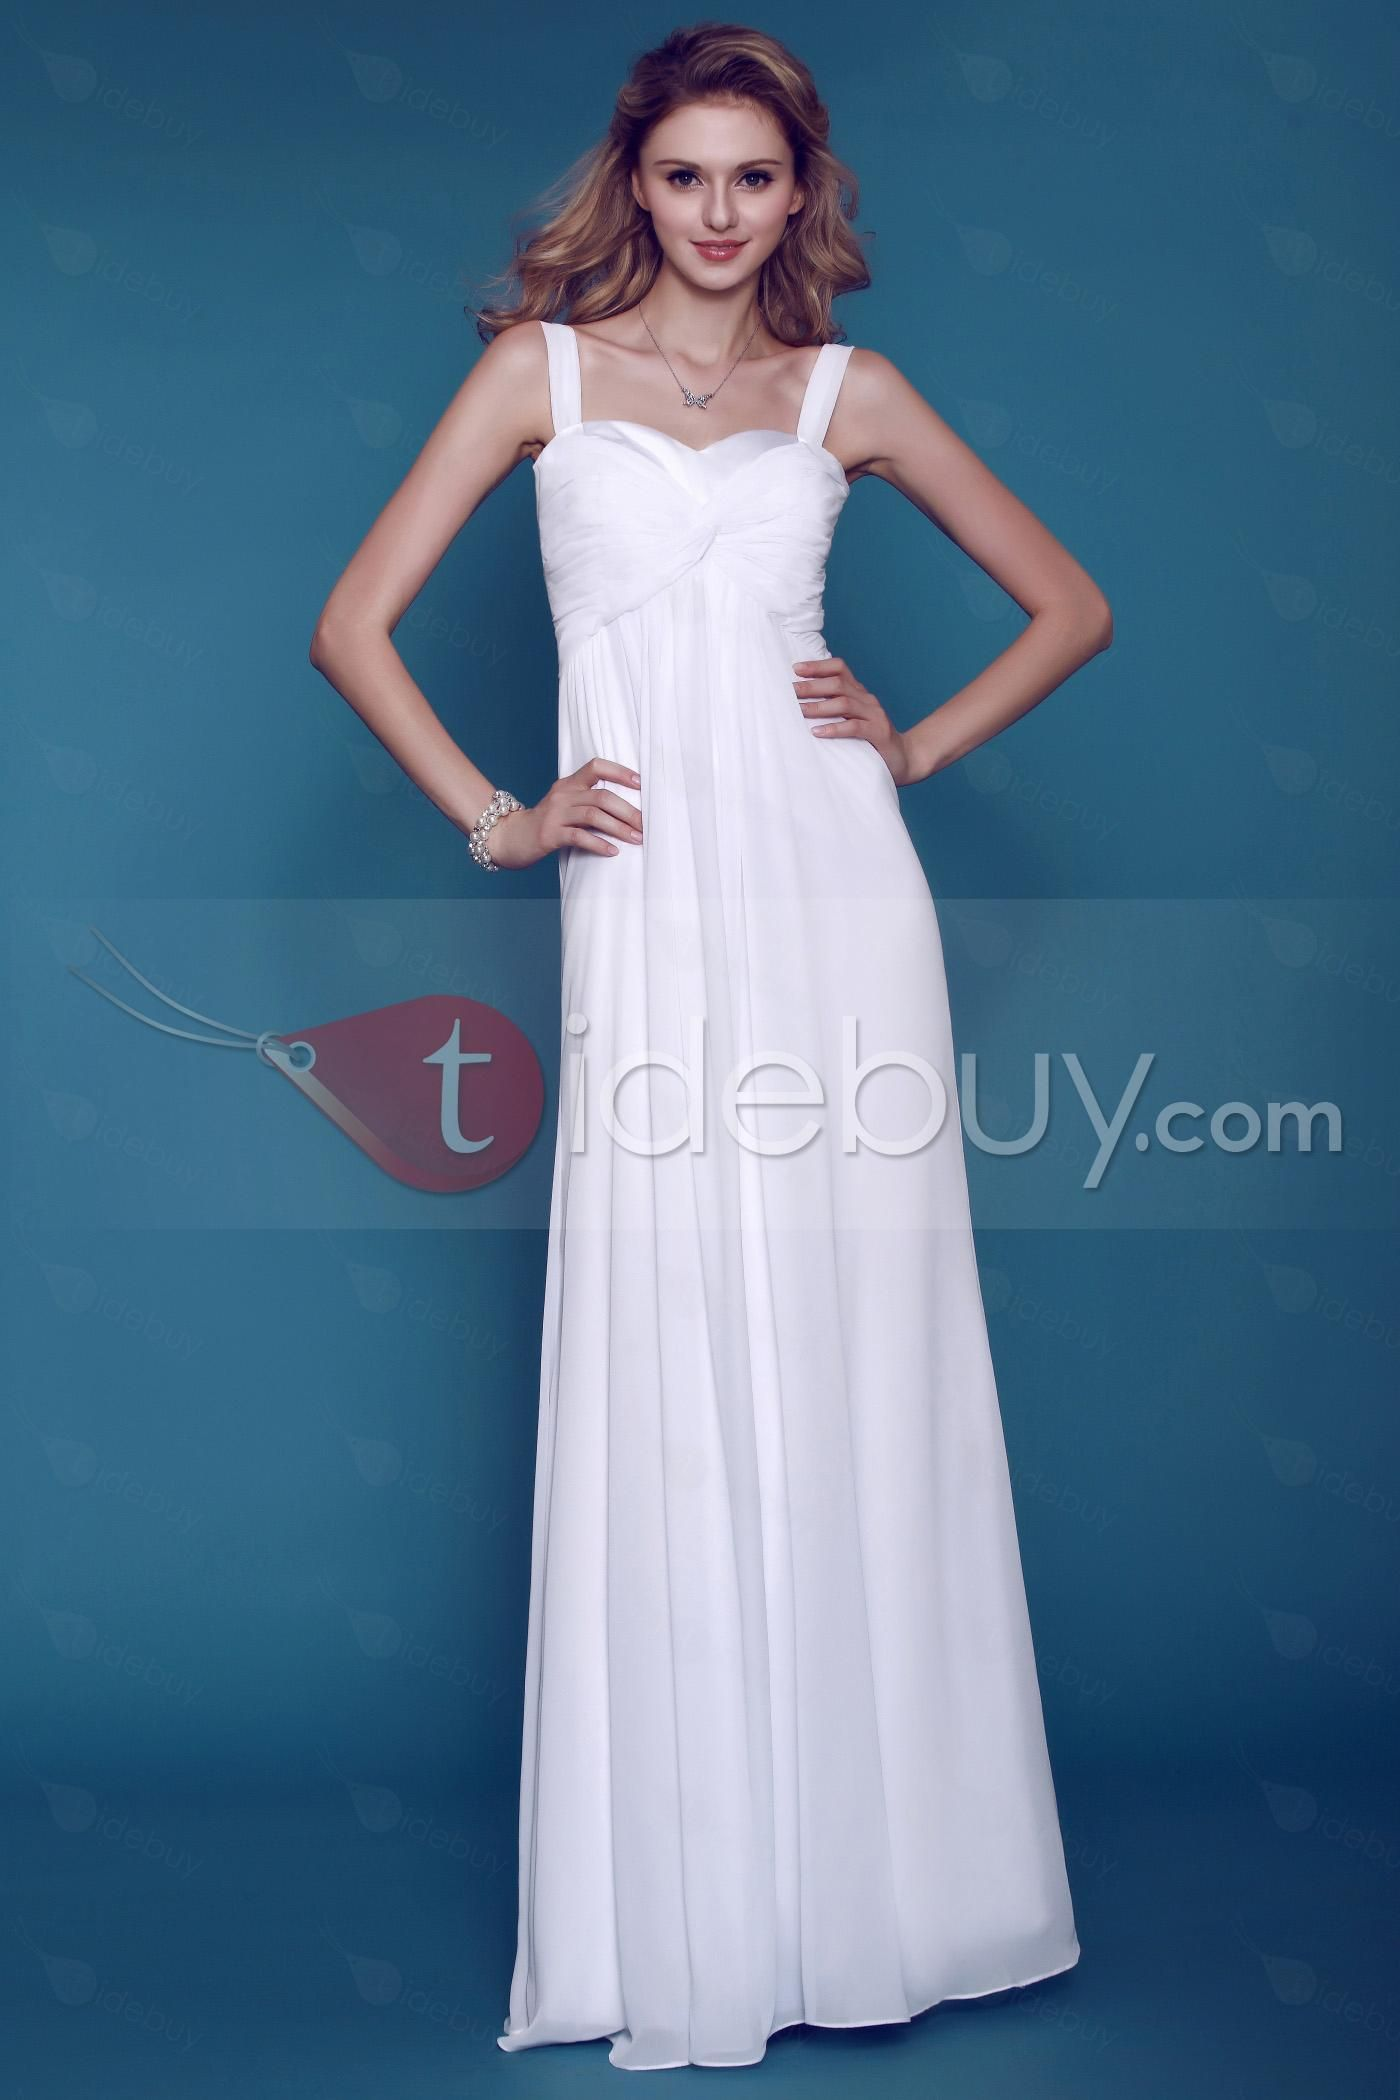 Chiffon wedding dresses  Airy Empire Dashaus SheathColumn Sweetheart Straps Beach Wedding